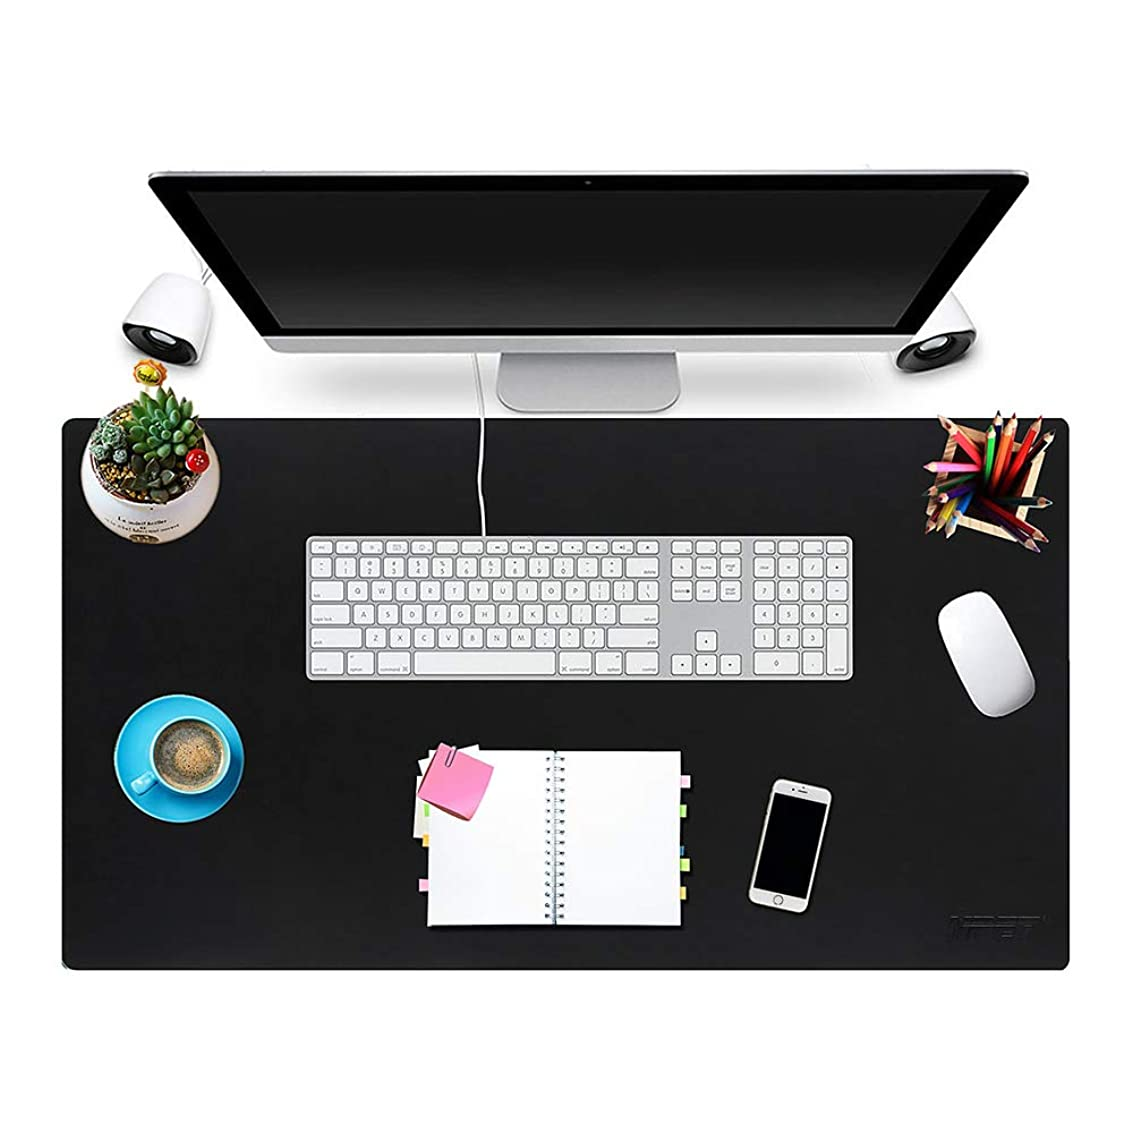 Multifunctional Office Desk Pad 31'' x 17'', NPET P10 Ultra Thin Waterproof PU Leather Mouse Pad, Extended Large Mat with Non-Slip Rubber Base, Dual Use Desk Writing Mat for Office/Home qimlj3330864123